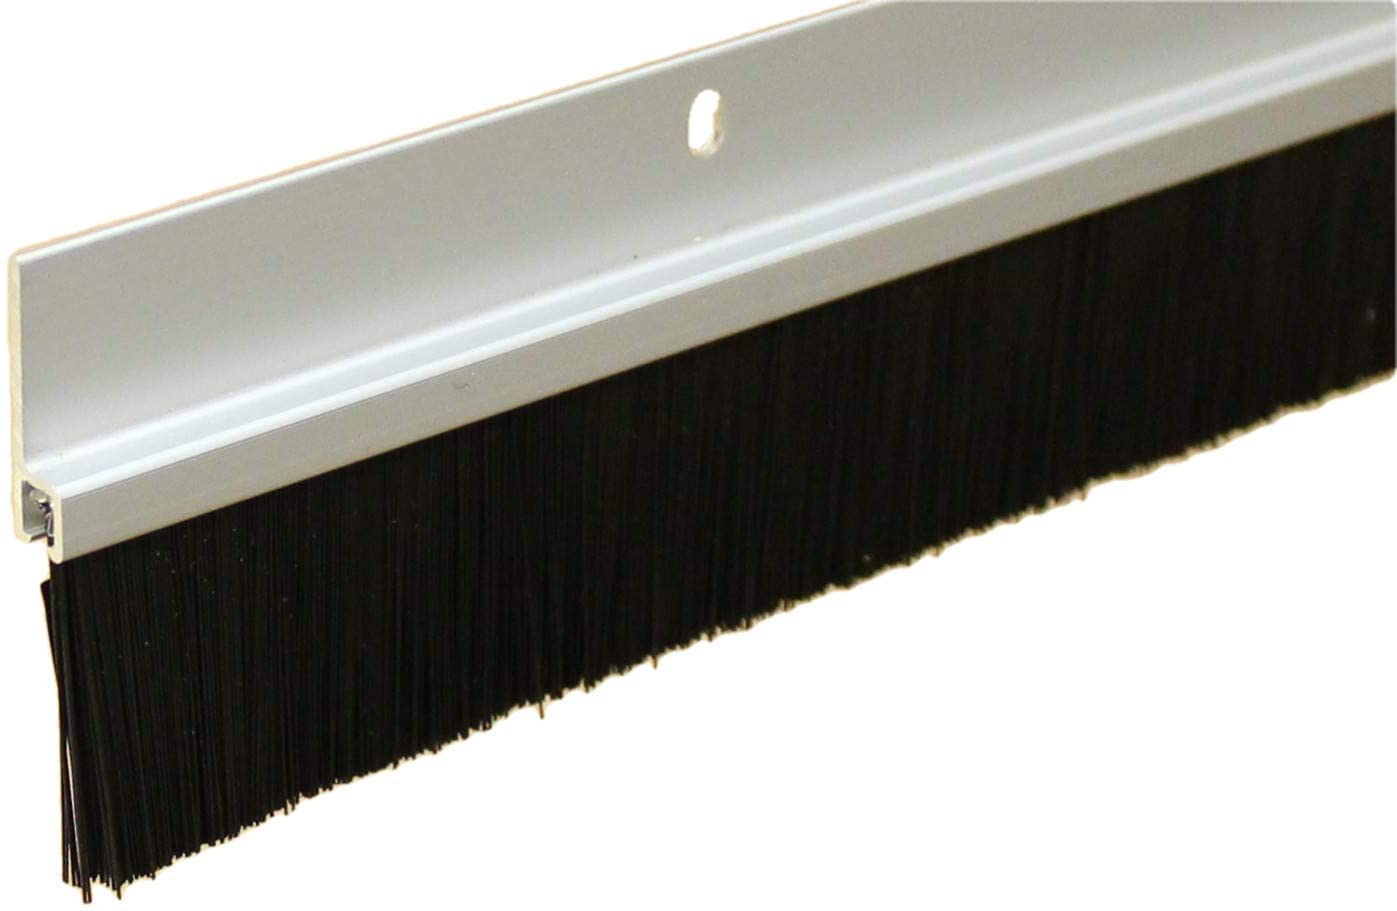 Heavy Duty Clear Anodized Brush Sweep Door Sweep for Gaps Up to 2